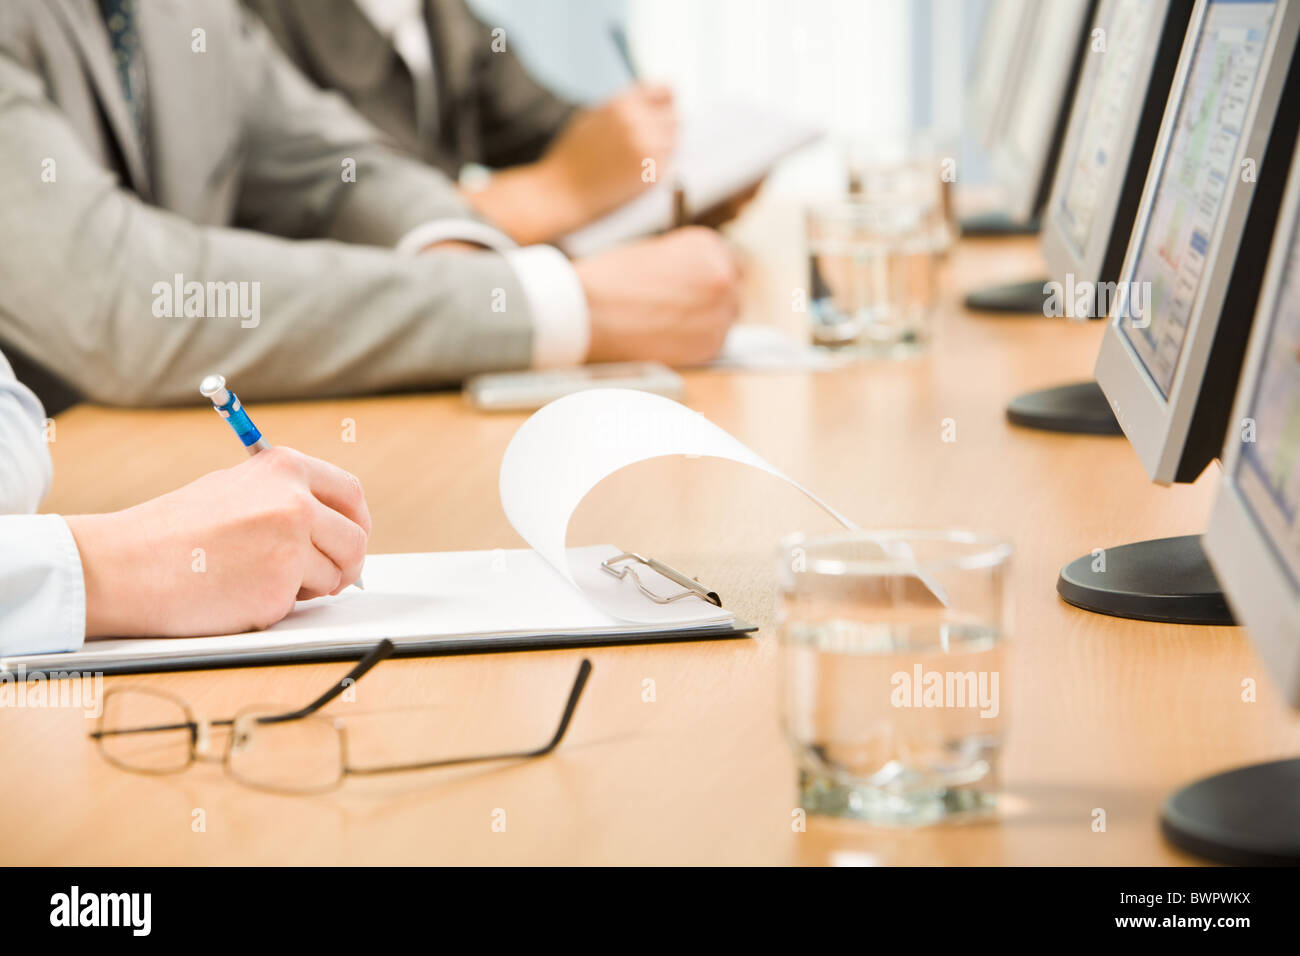 Image of human hand holding pen and making notes with glass of water, eyeglasses and monitors near by - Stock Image